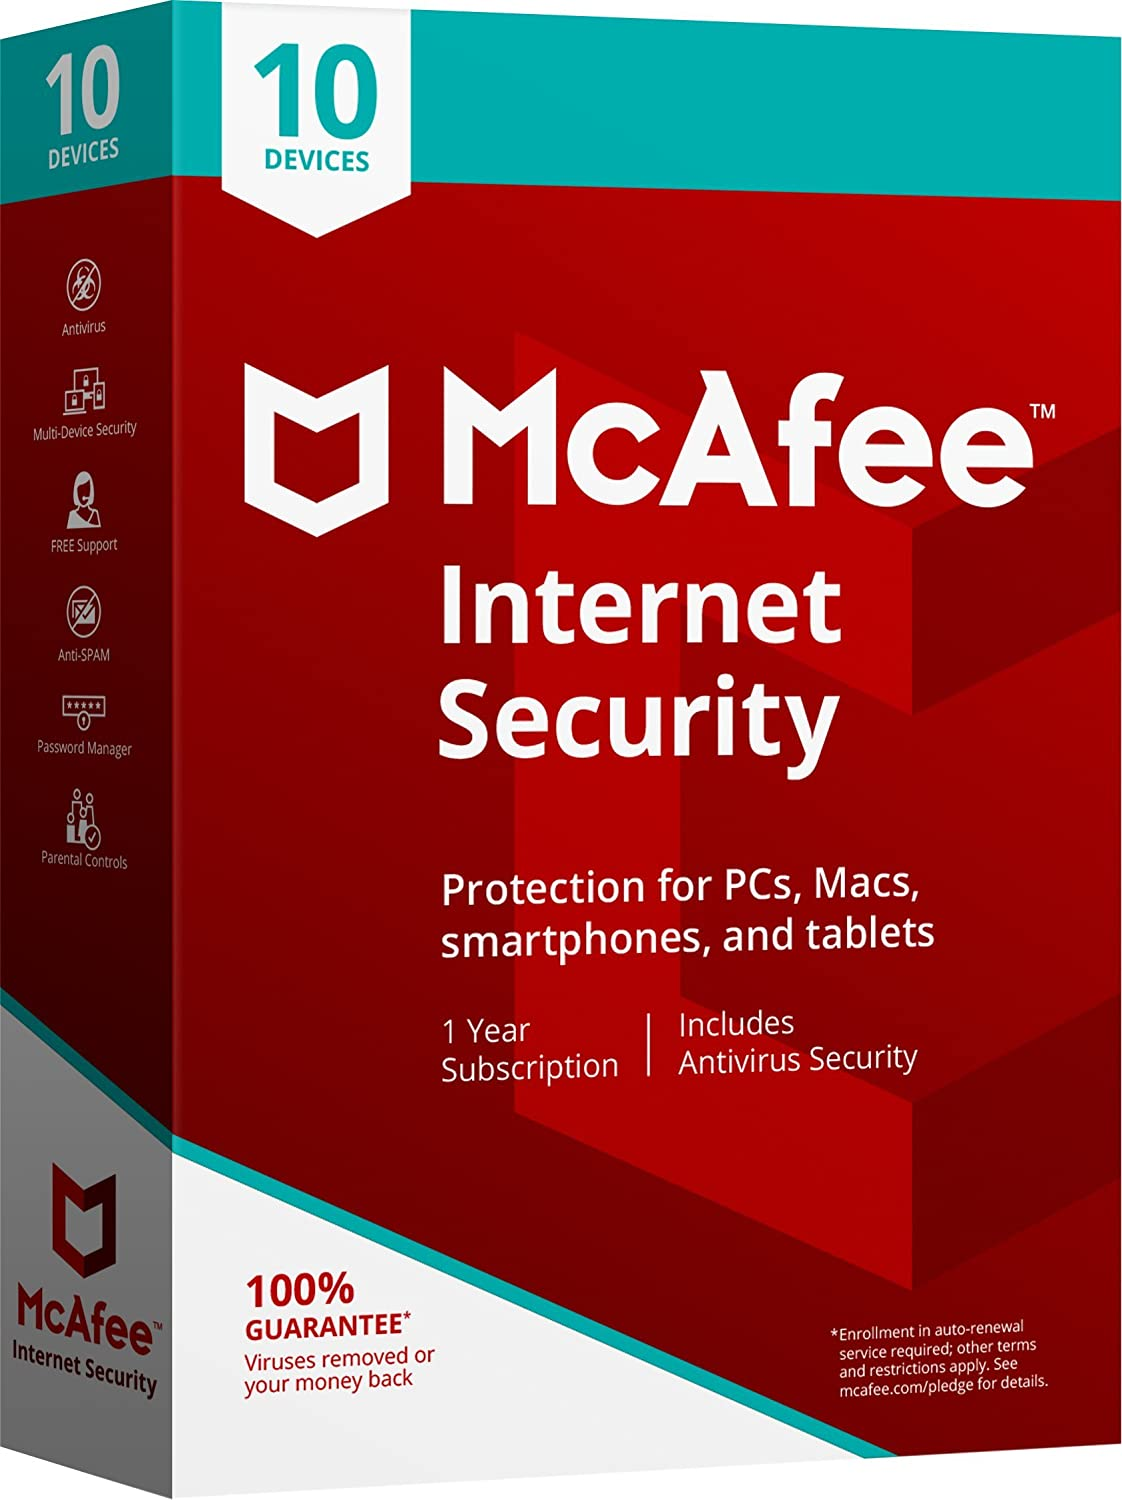 Amazon.com: McAfee 2018 Internet Security - 10 Devices [Obsolete]